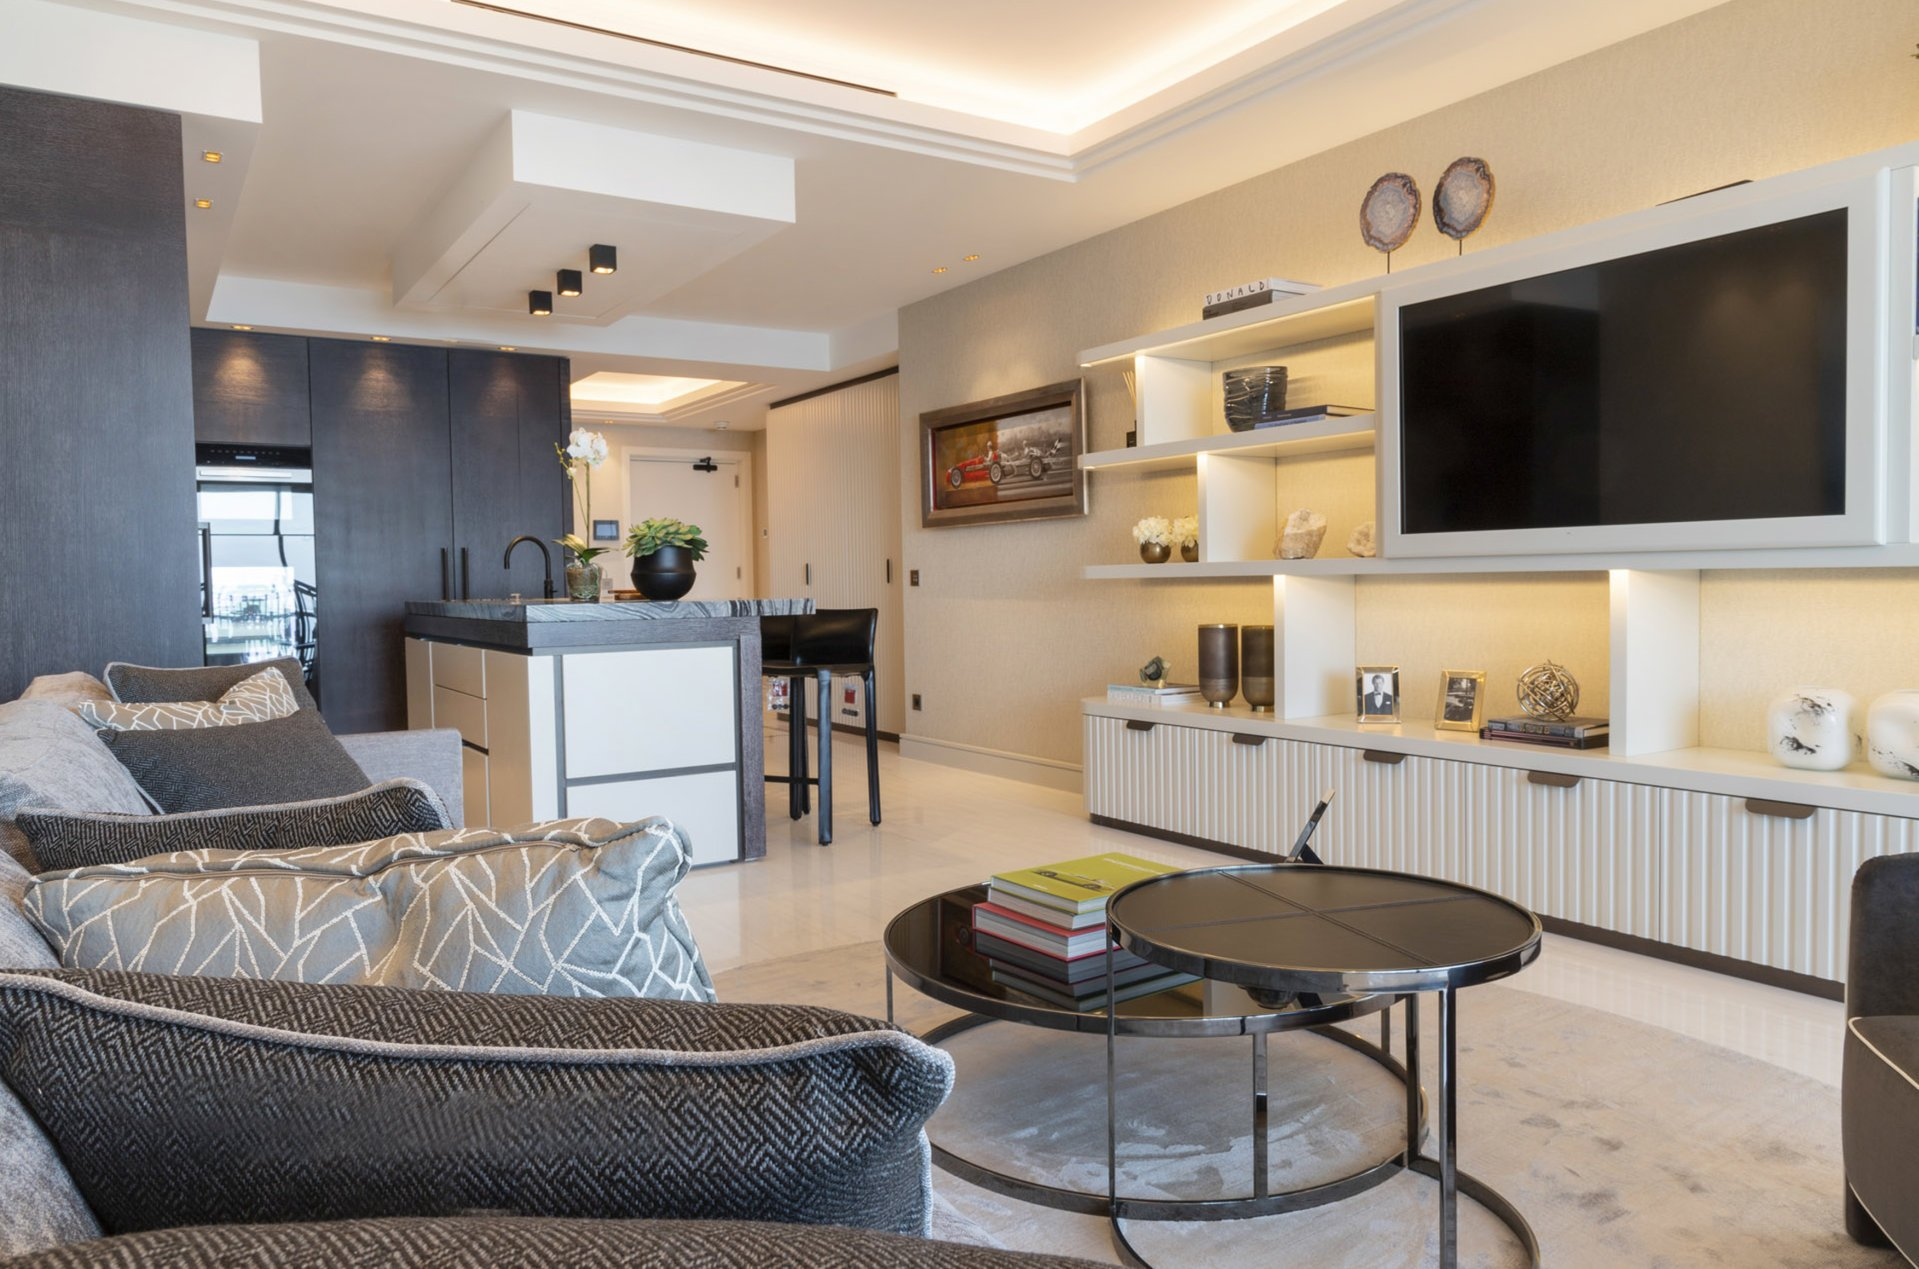 Le Mirabeau - Exquisite One Bedroom